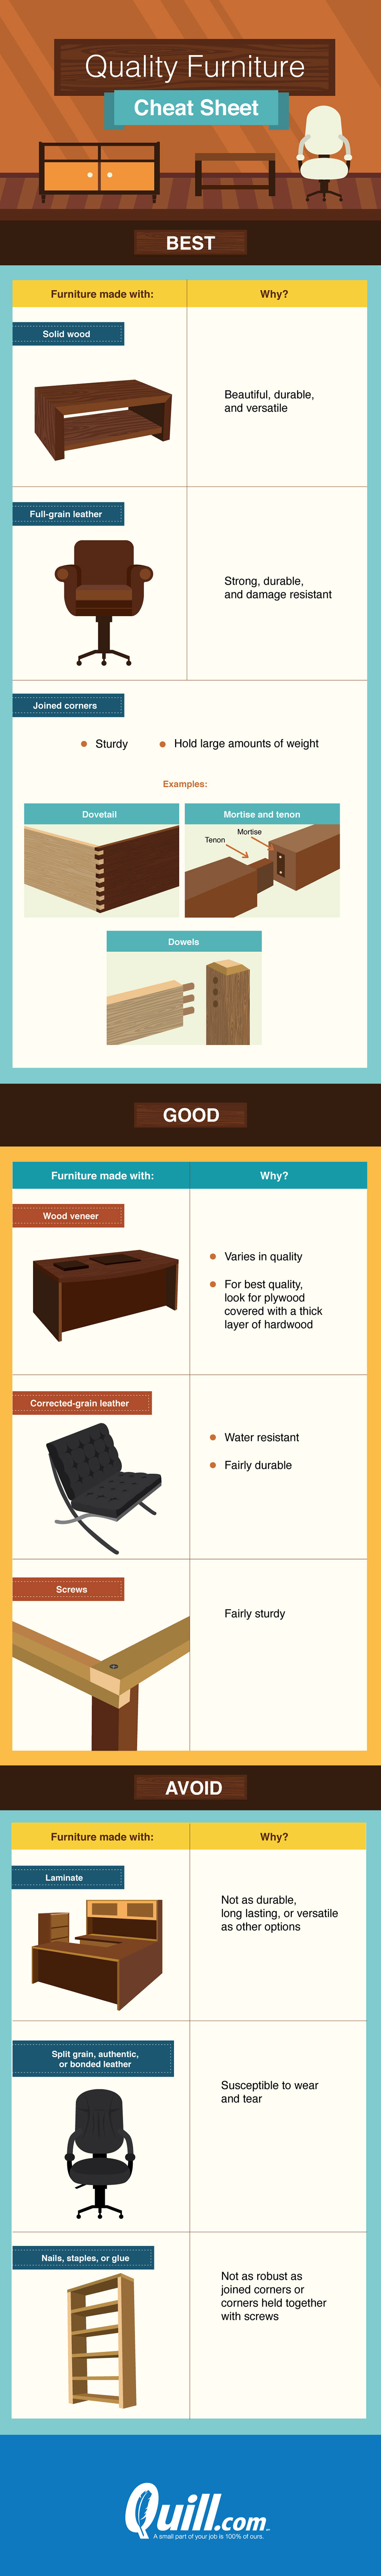 How to identify quality furniture